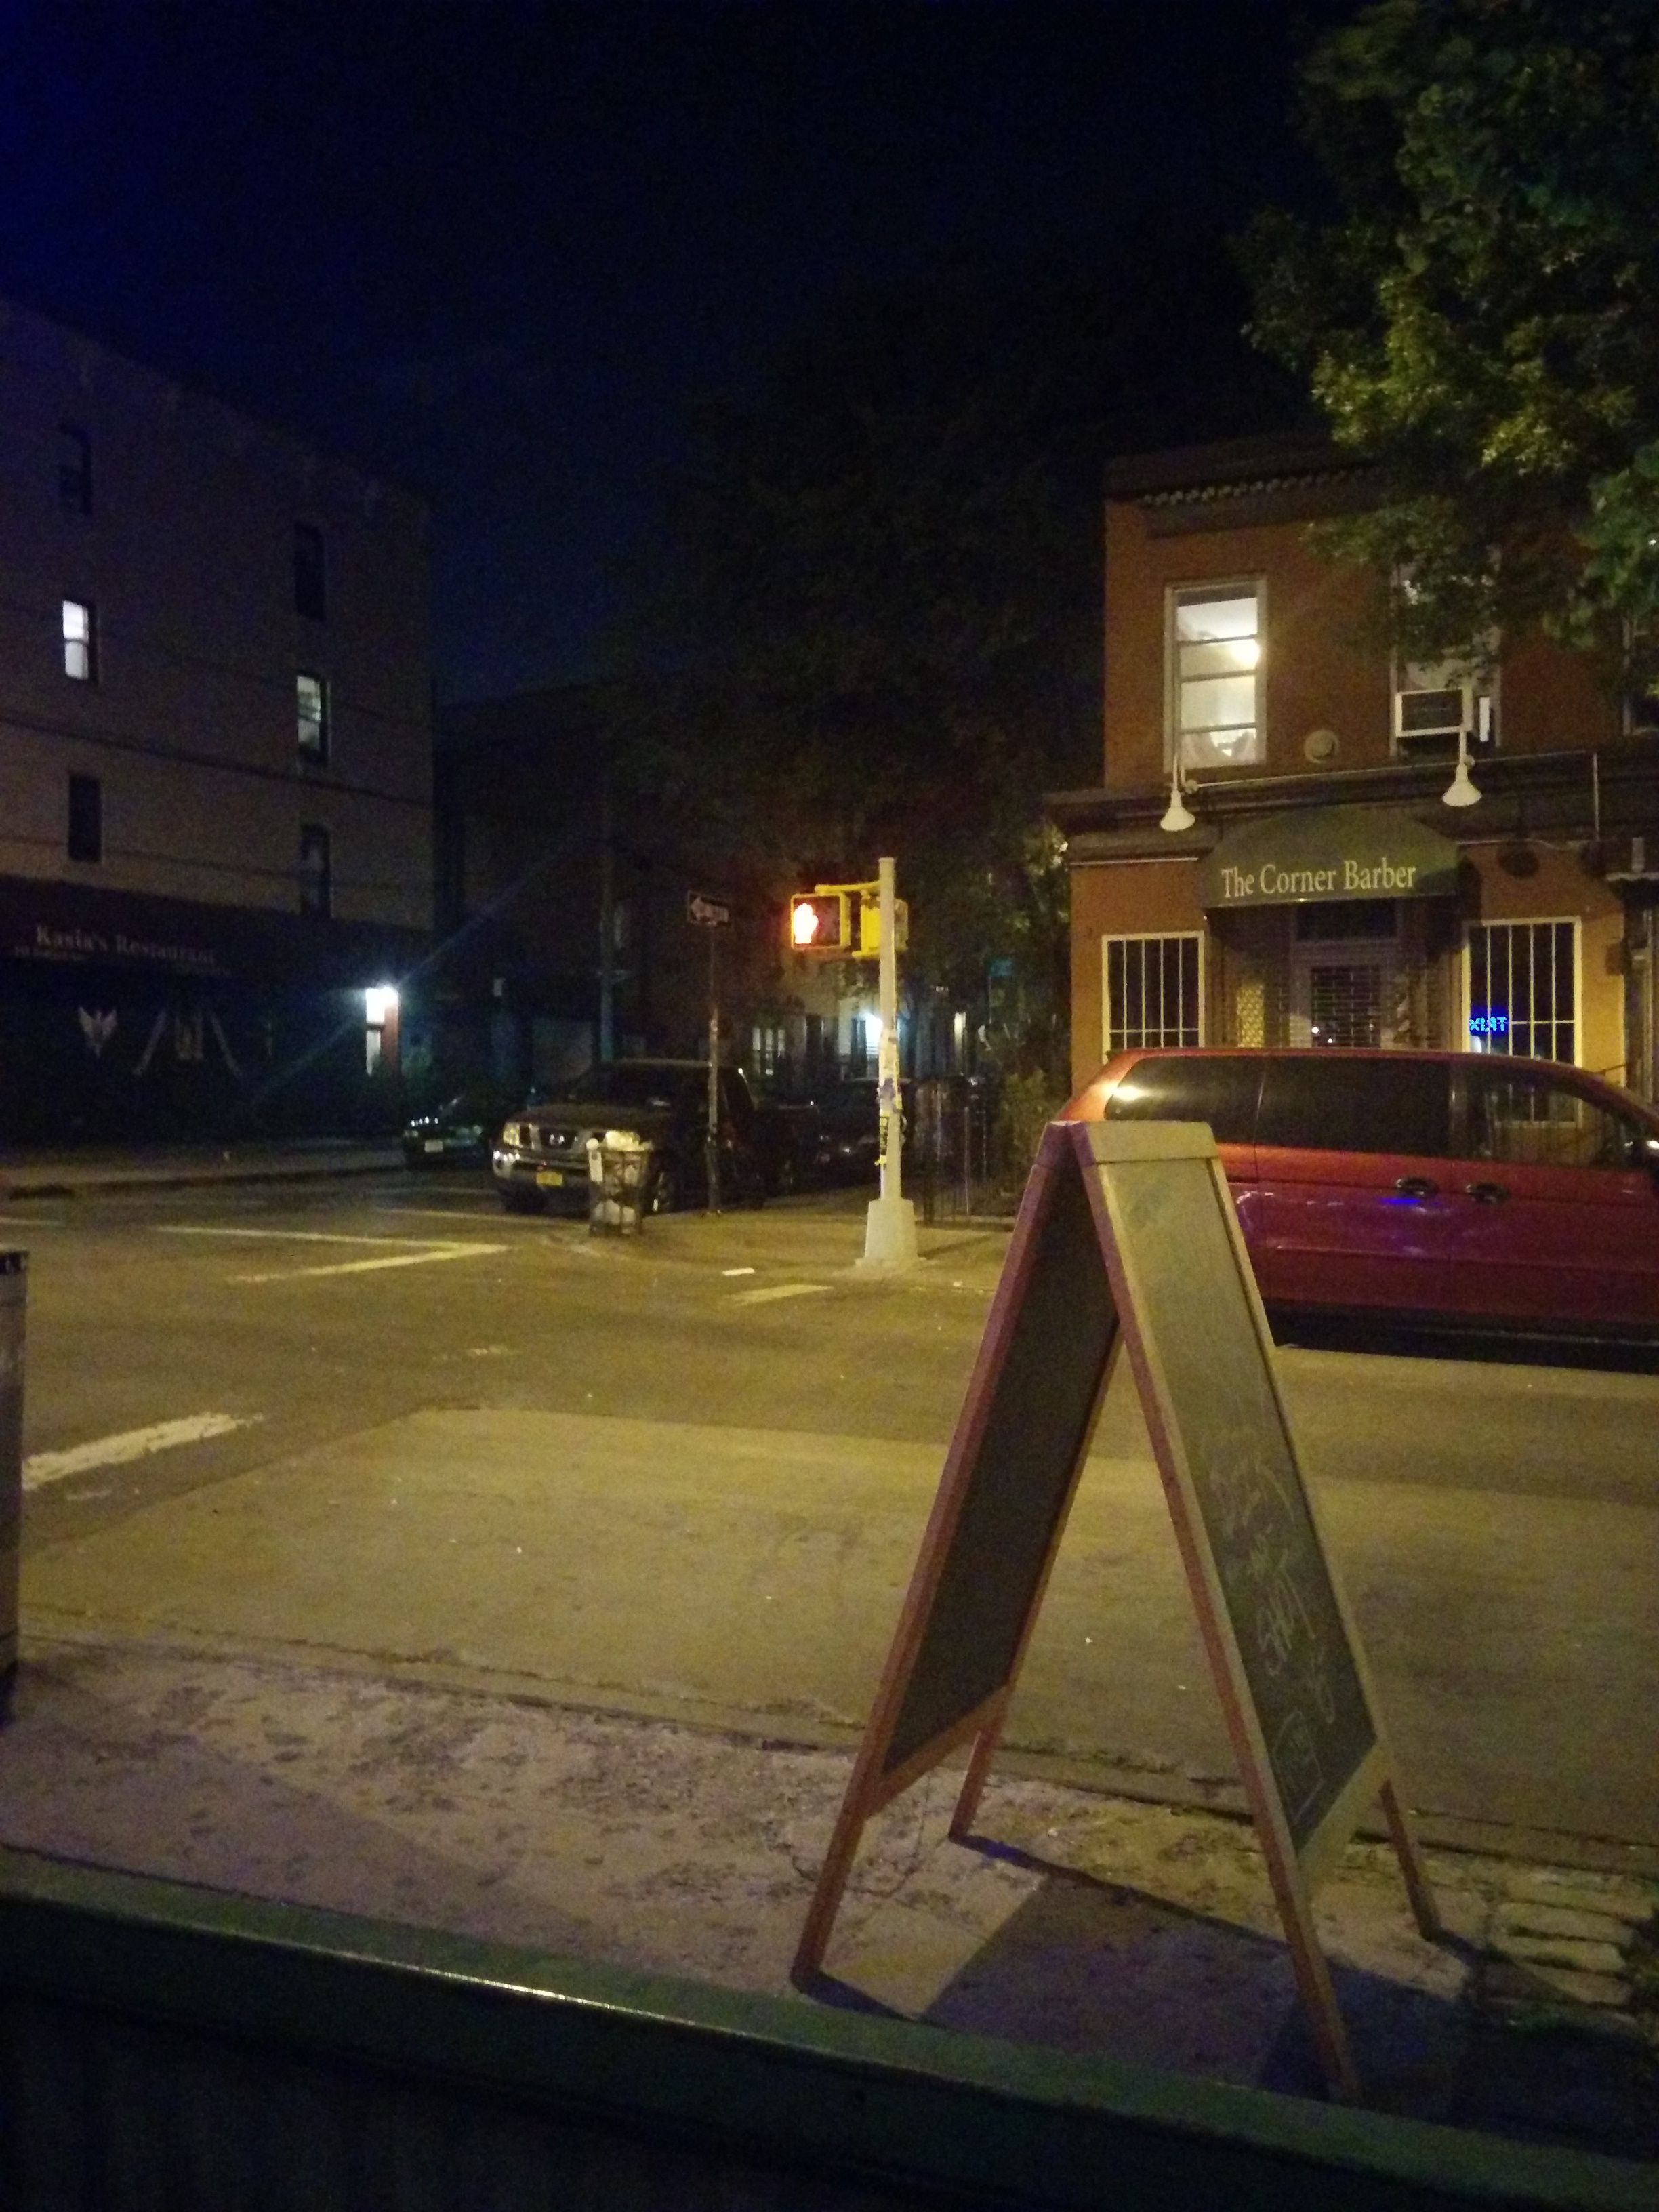 Williamsburg, Brooklyn. View from the bar.